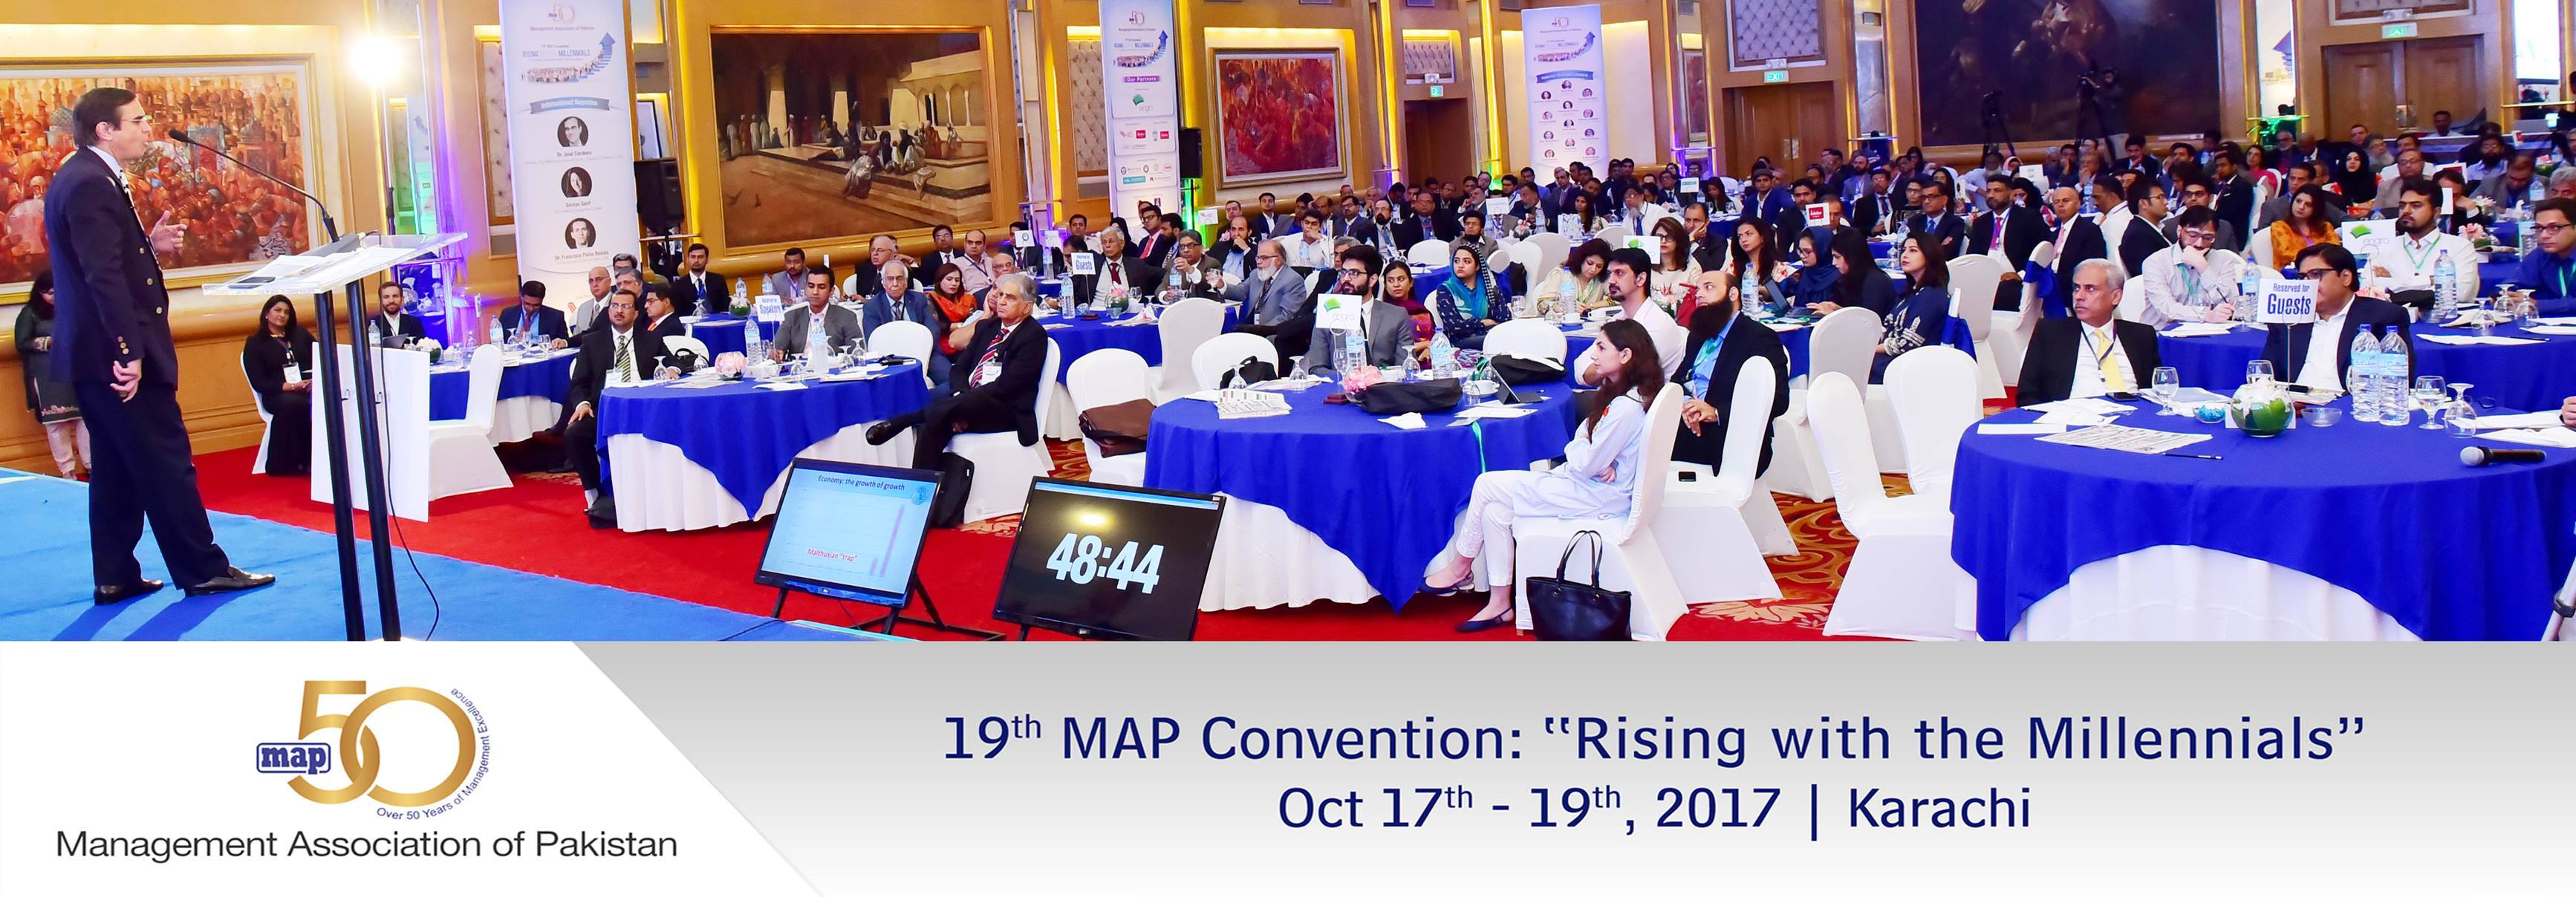 19th MAP Convention Pictures (47)